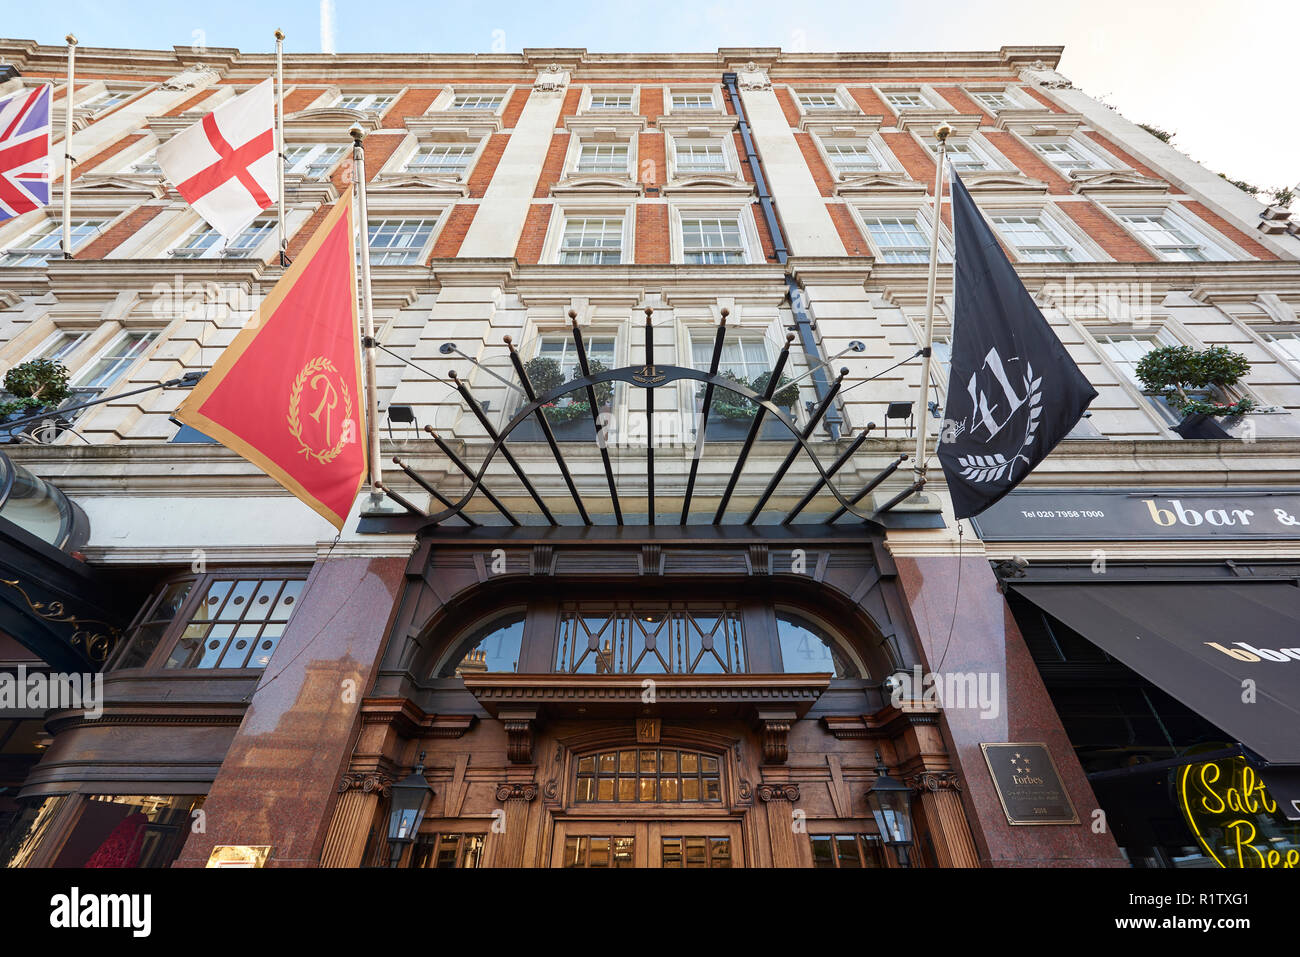 Low angle fisheye shot of facade of 41 Hotel in London, UK, near Buckingham Palace and Victoria Station. - Stock Image